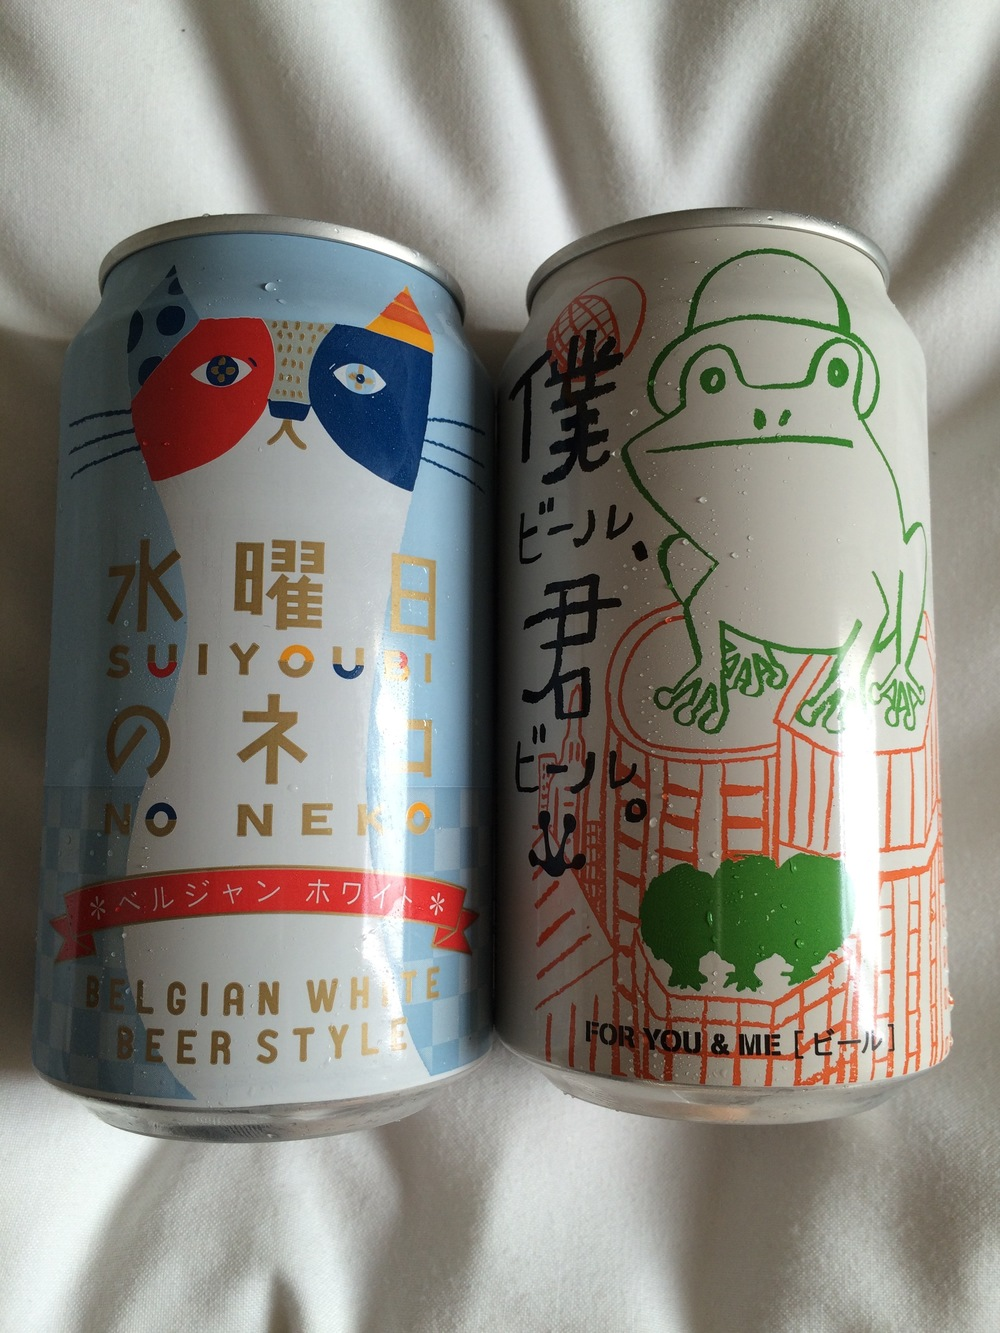 Japanese beer can design